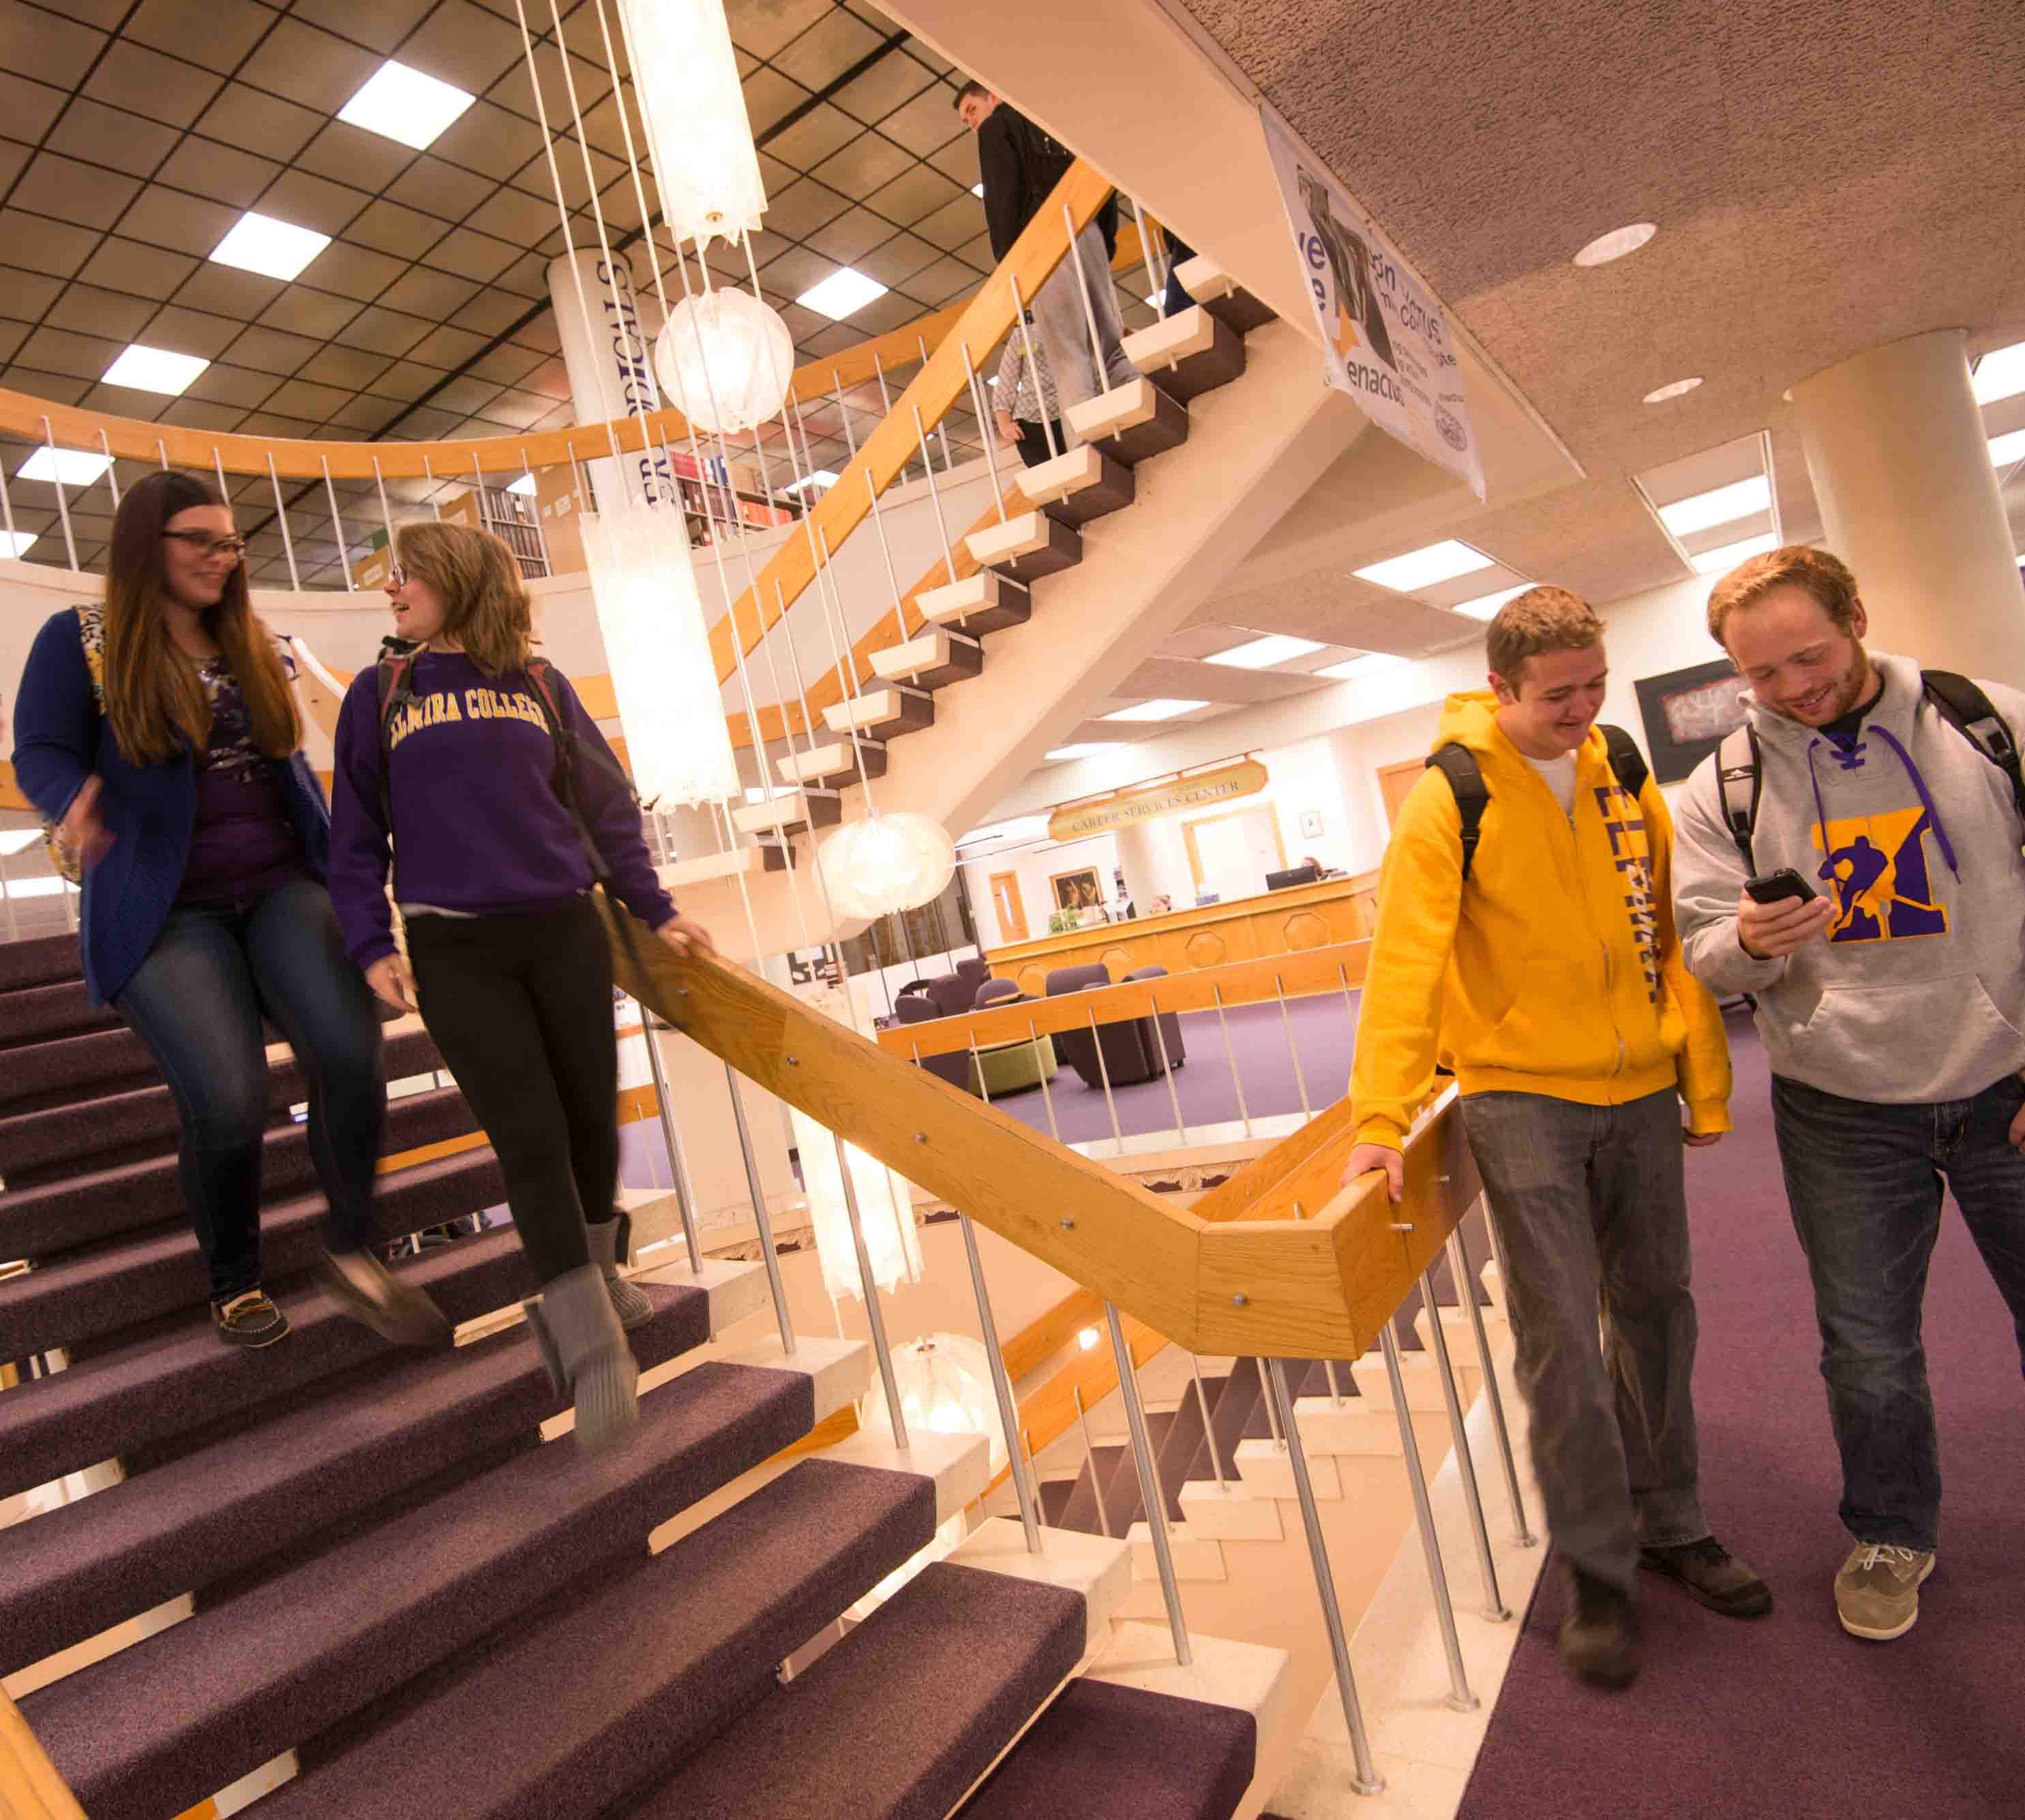 Students coming down stairs in Gannett-Tripp Library